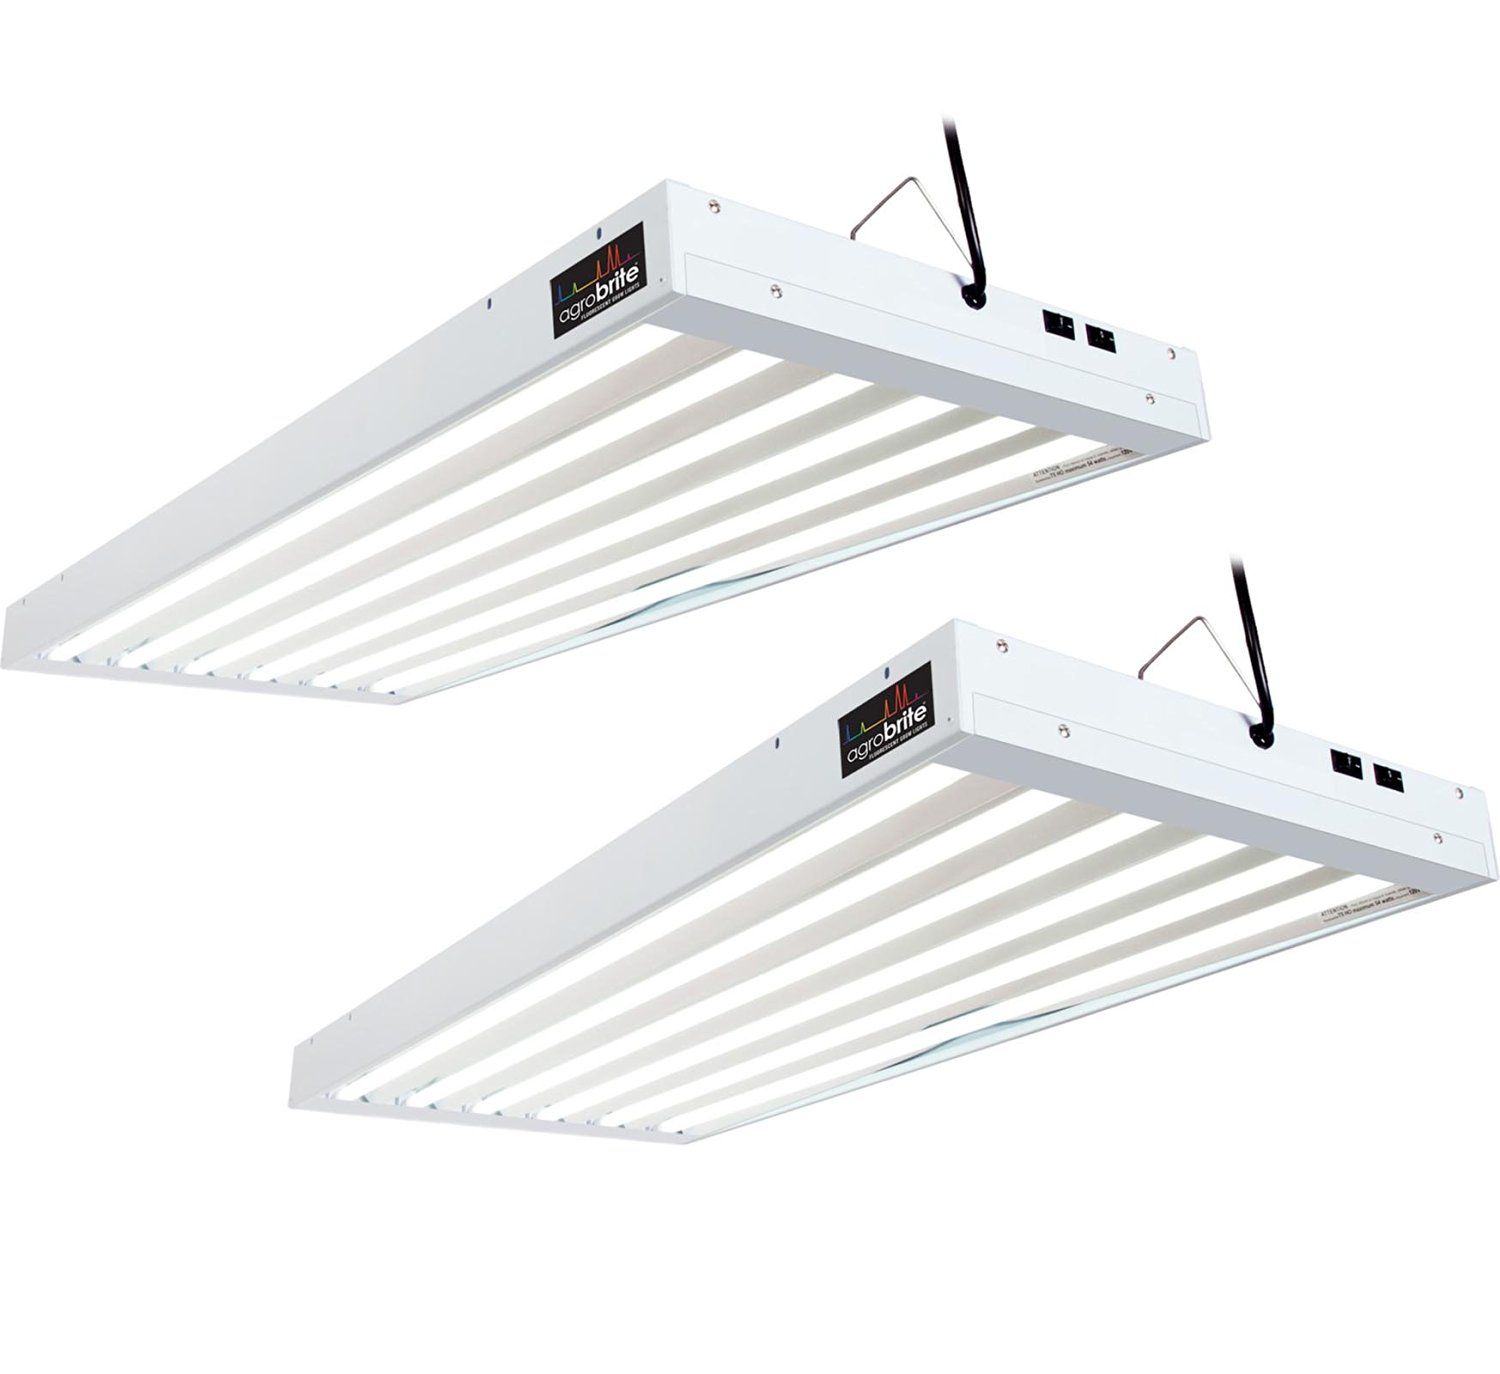 Get Ations 2 Agrobrite T5 324w 4 6 Grow Light Fixtures W